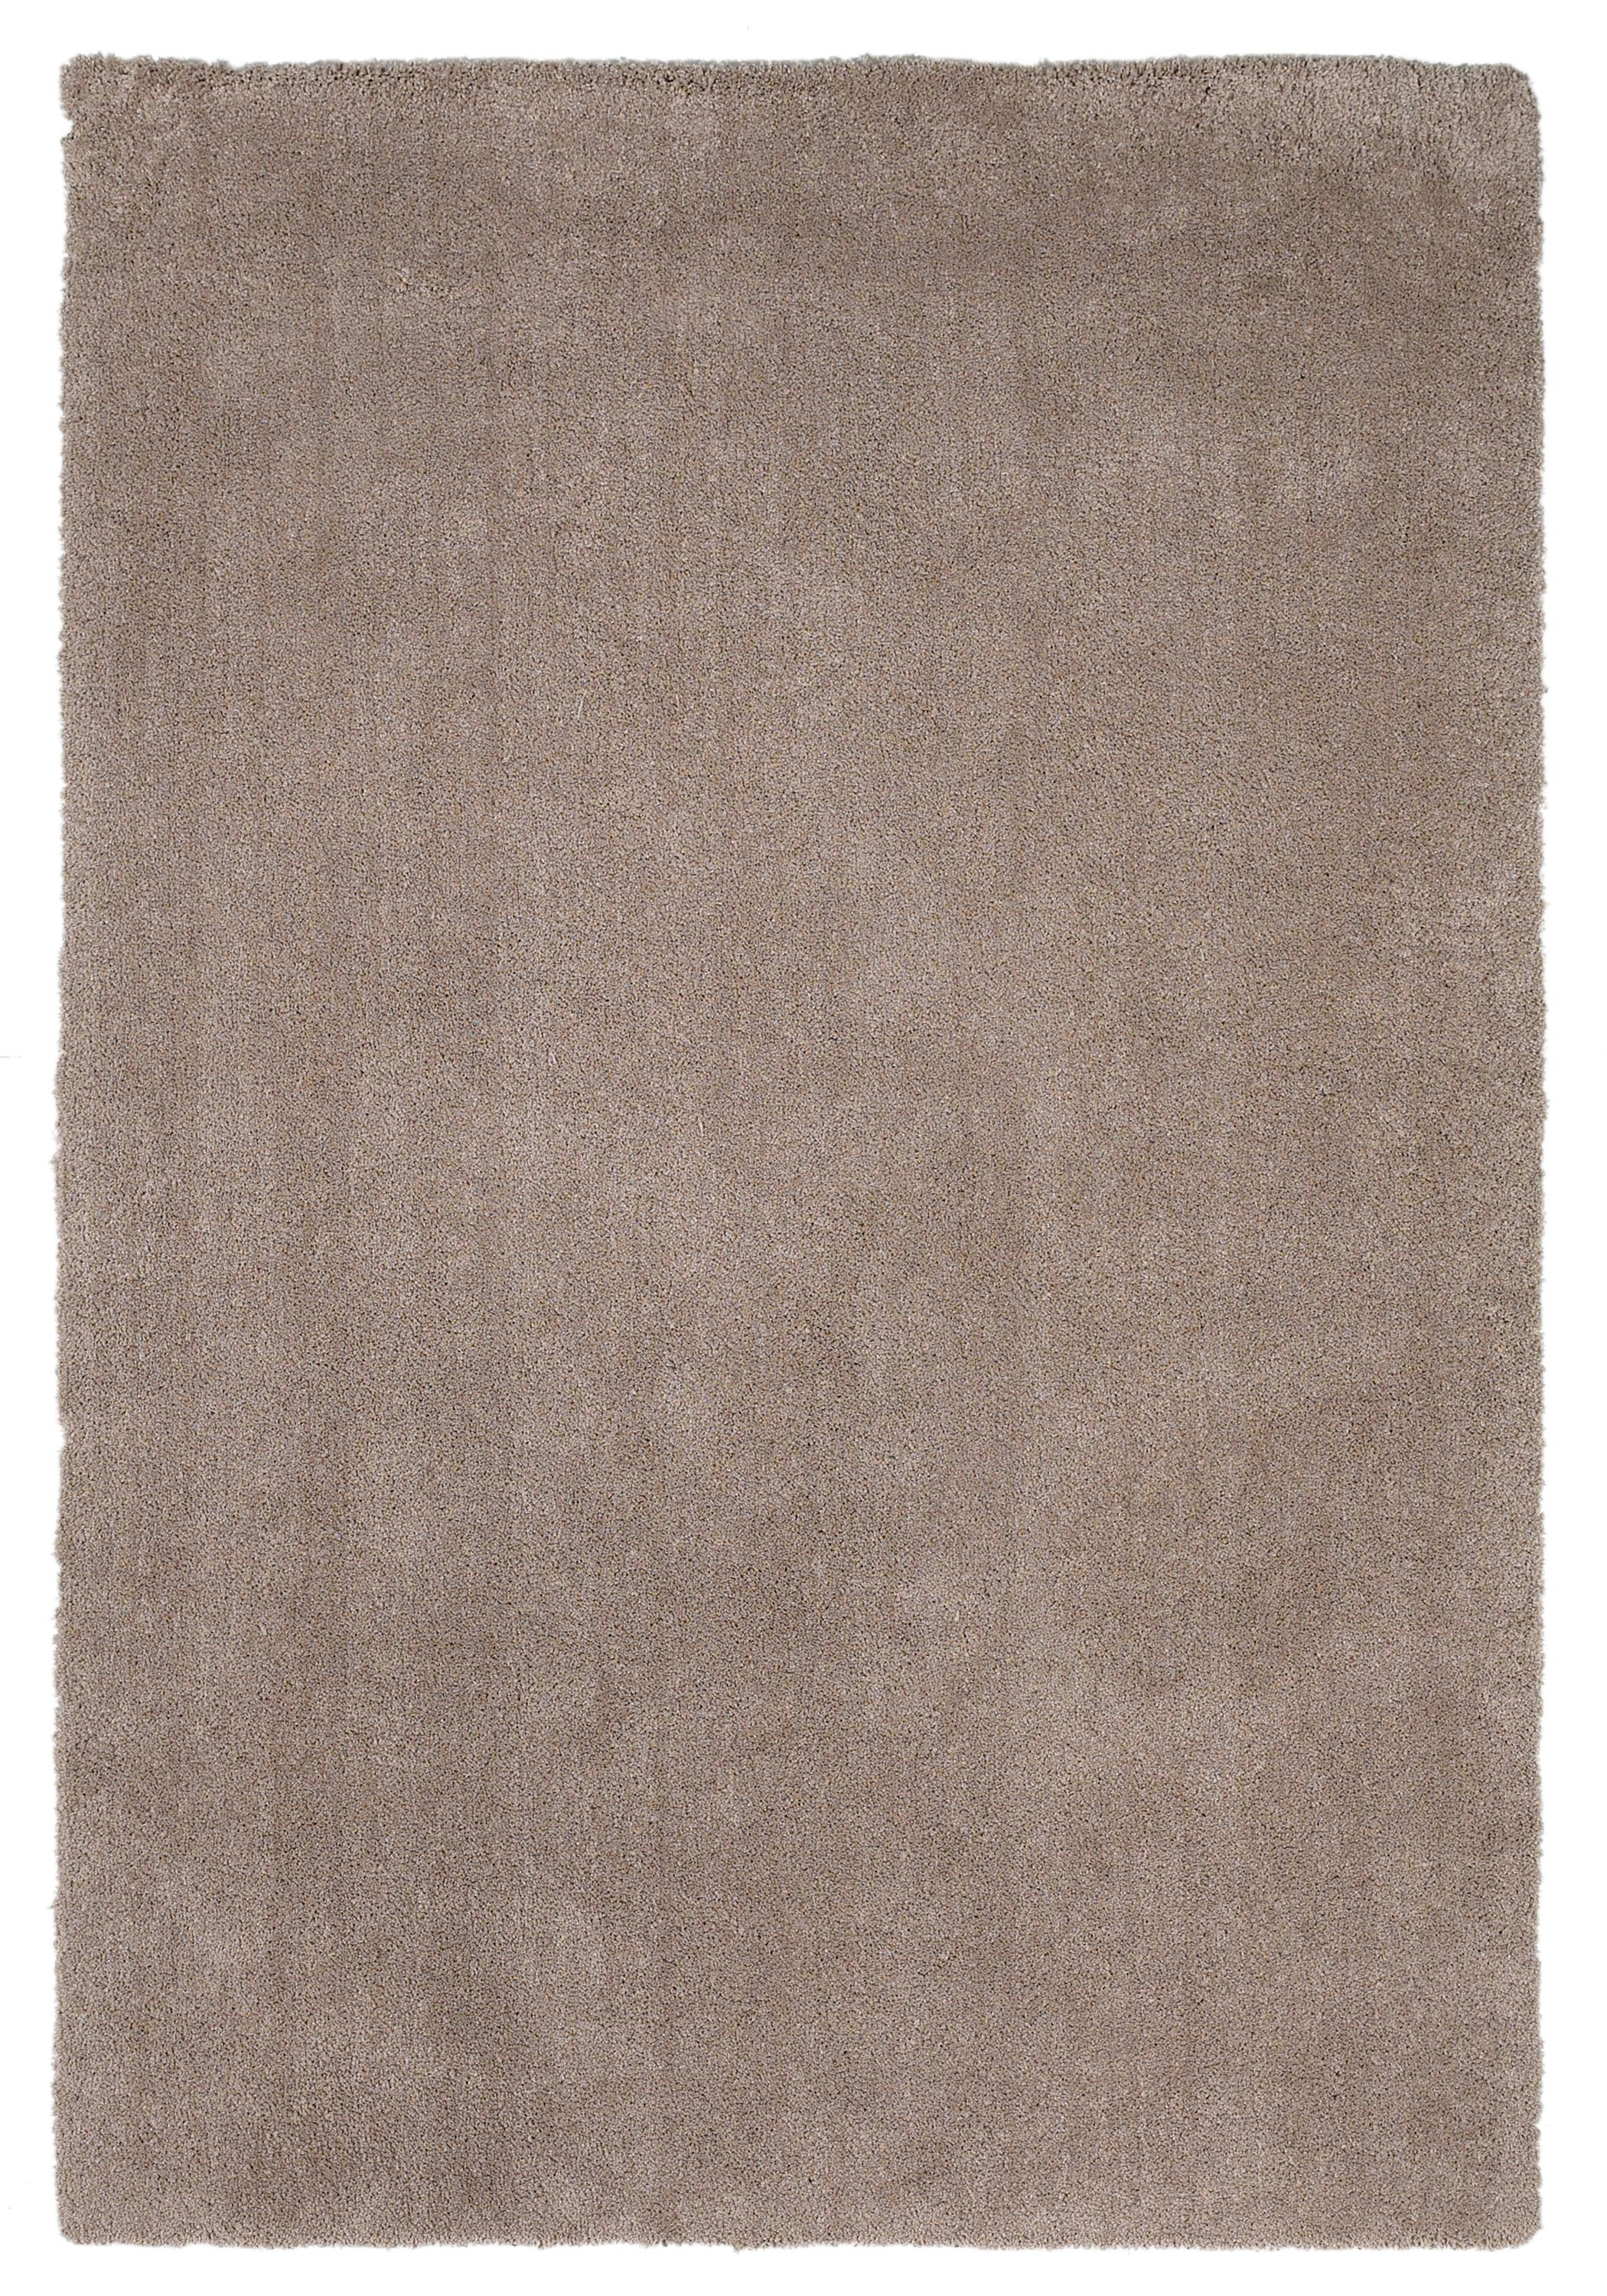 Kas Bliss 8' x 11' Rug - Item Number: BLI15518X11